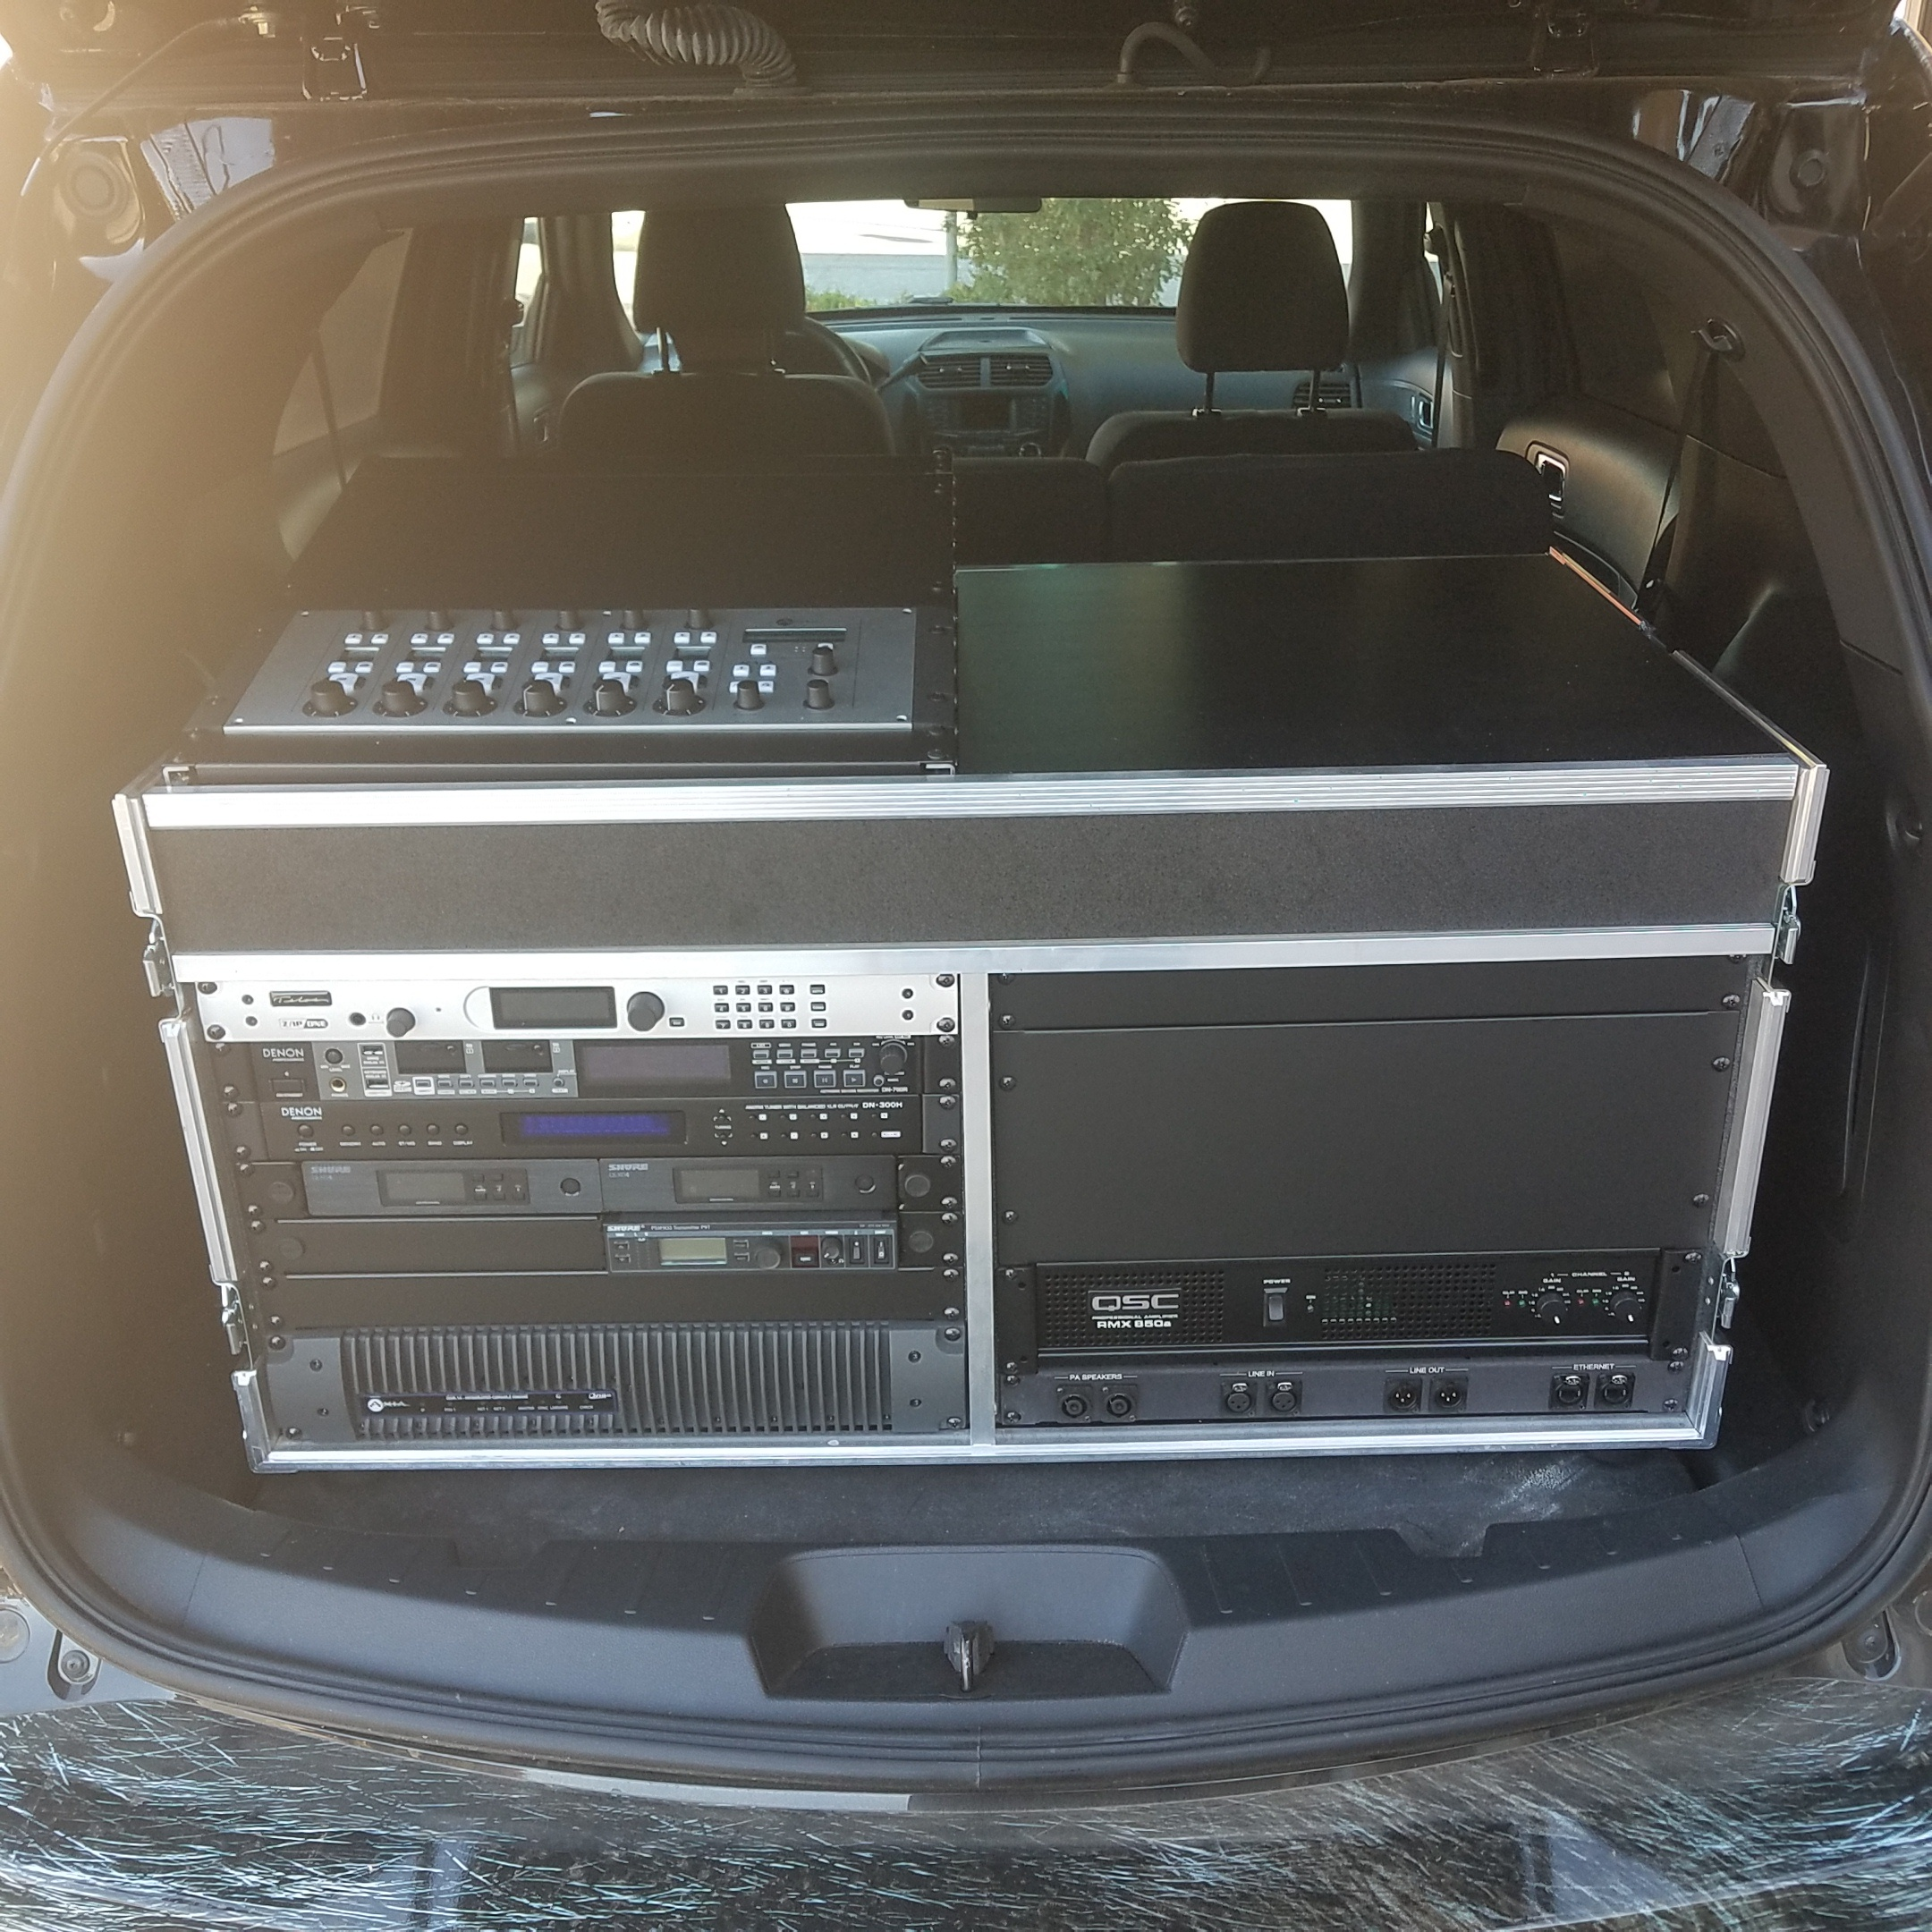 Livewire remote broadcast unit boxed up and ready to go